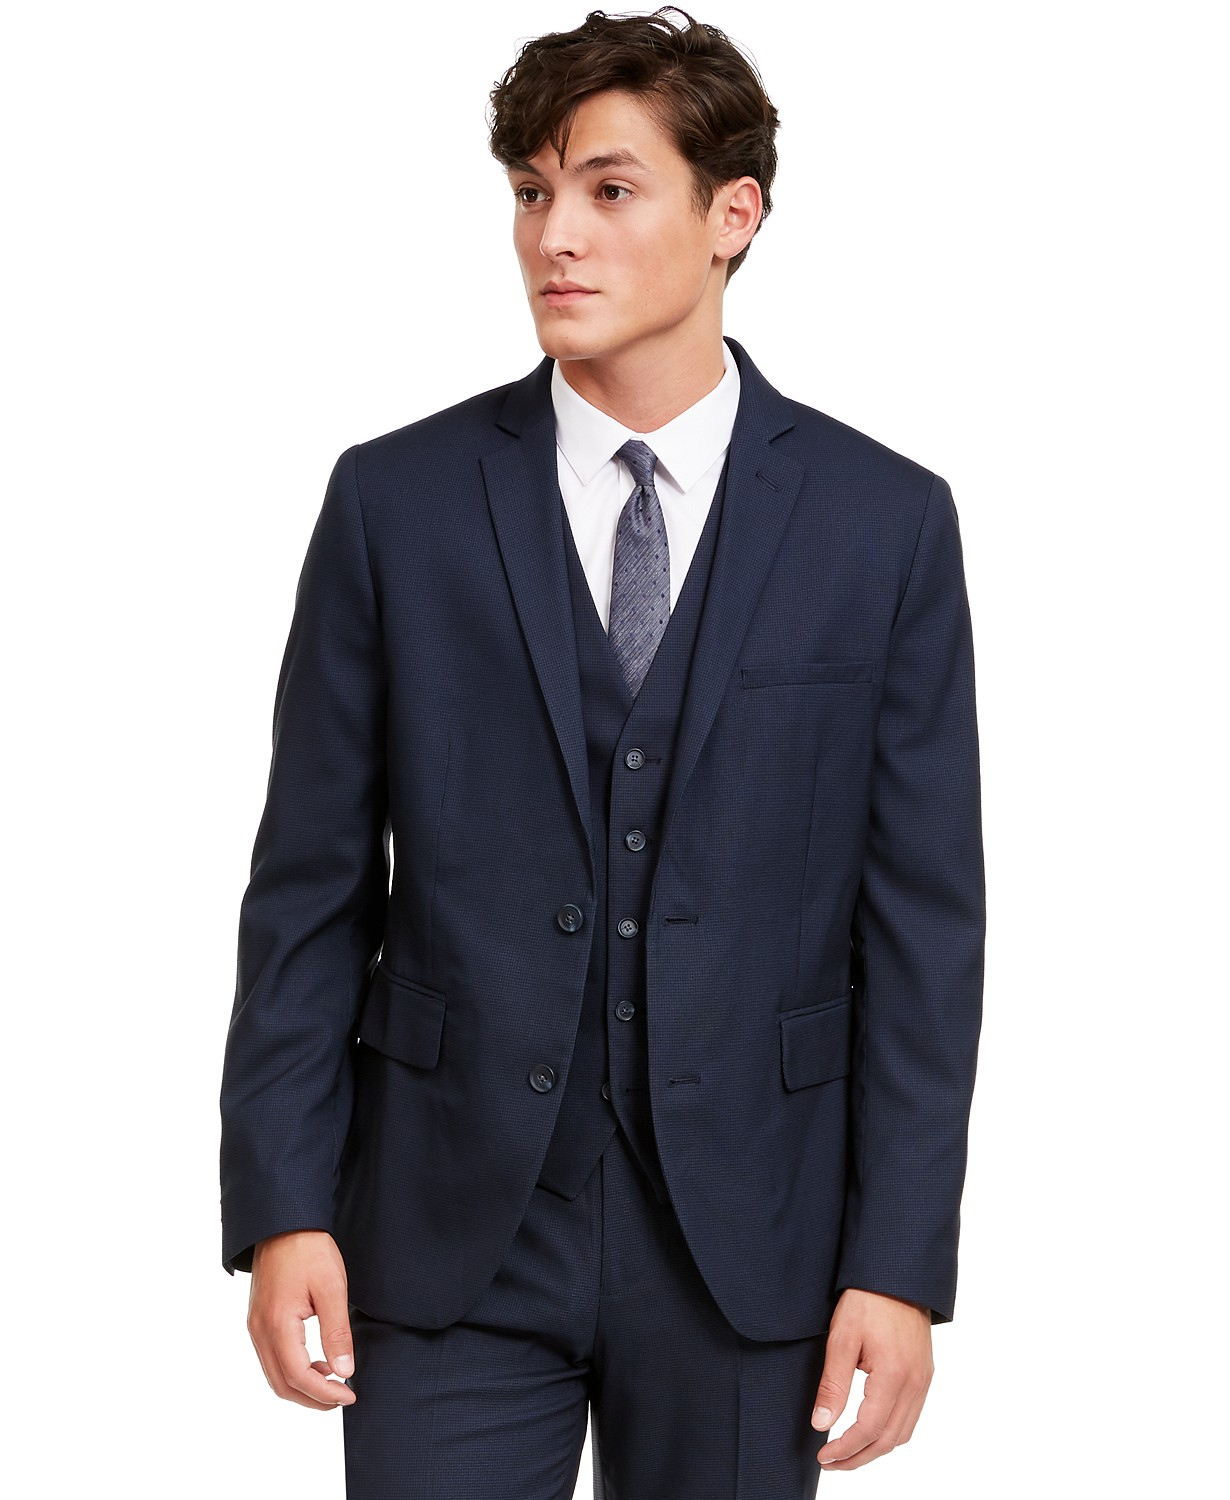 INC Men's Slim-Fit Micro Check Suit Jacket